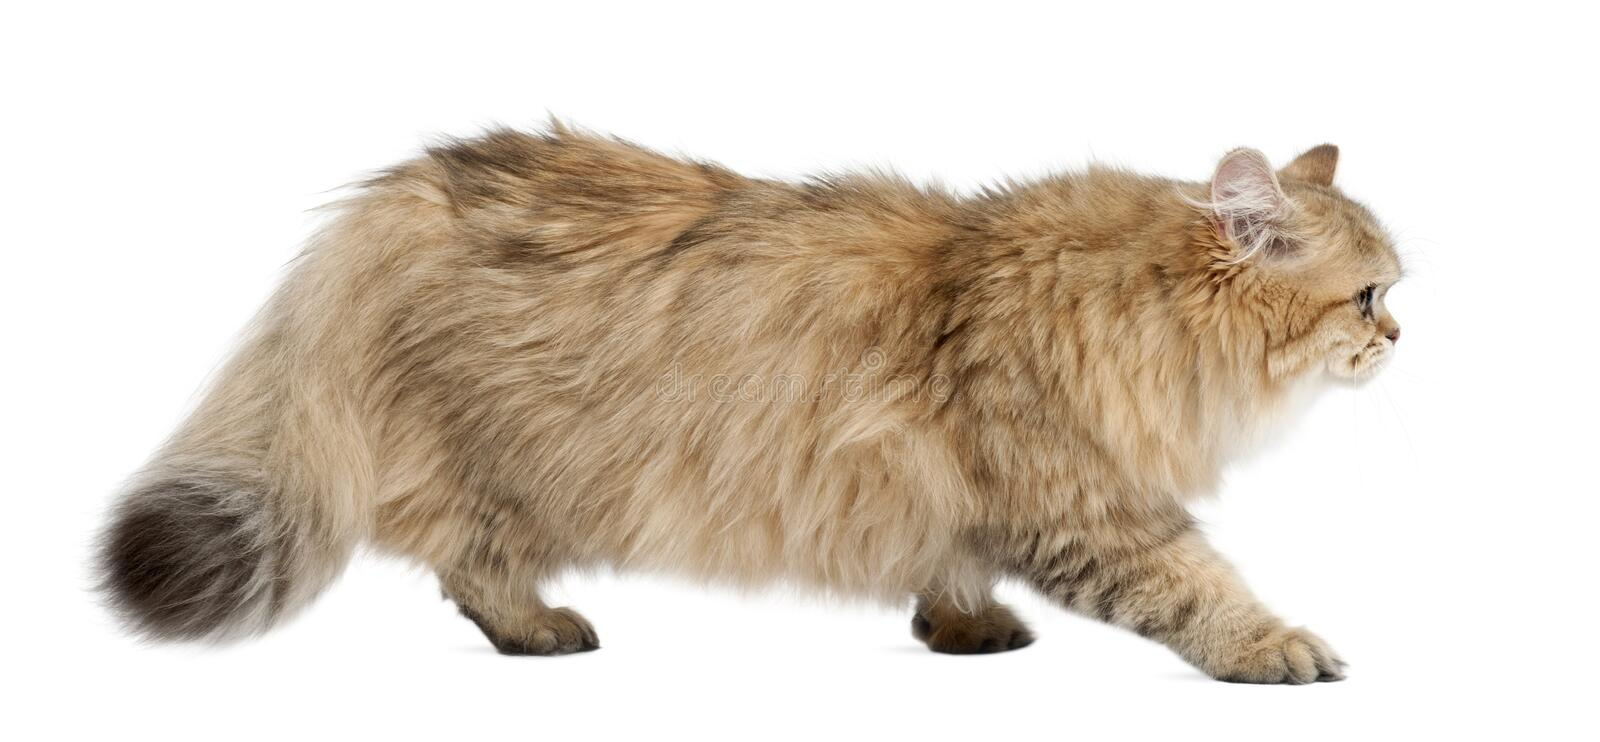 British Longhair Cat, 4 Months Old, Walking Stock Images